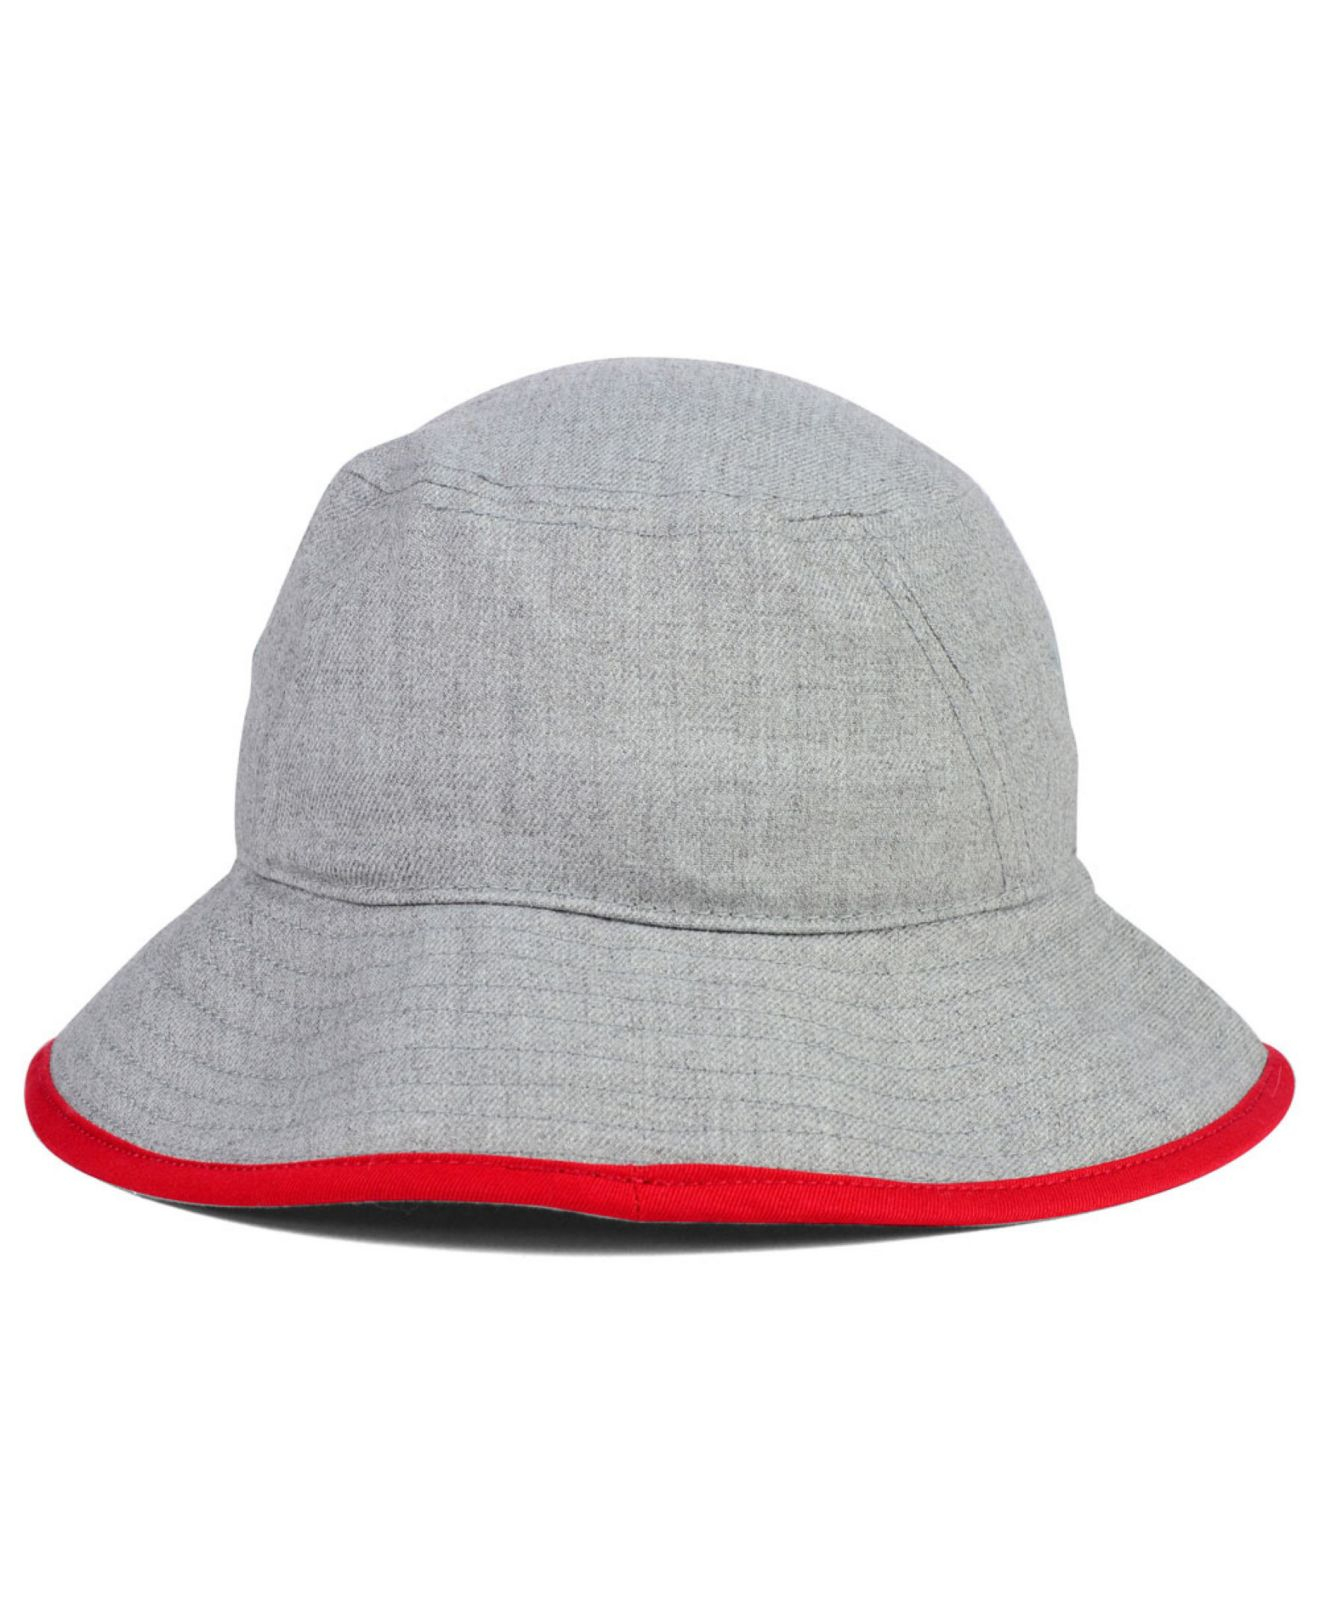 4e071528339 Lyst - KTZ Boston Red Sox Heather Tipped Bucket Hat in Gray for Men